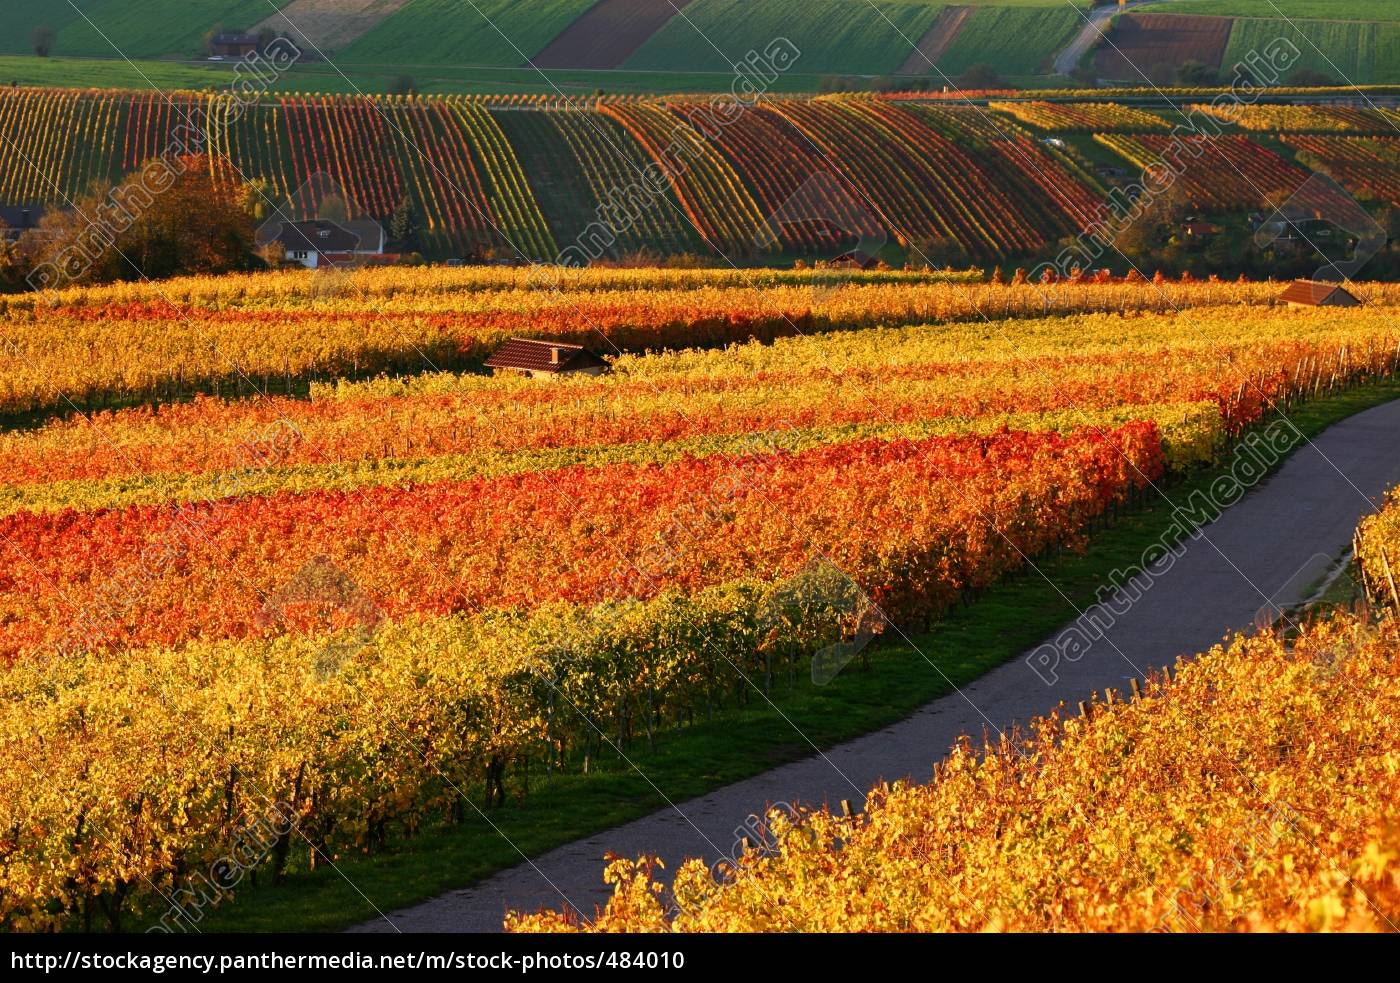 vineyards - 484010